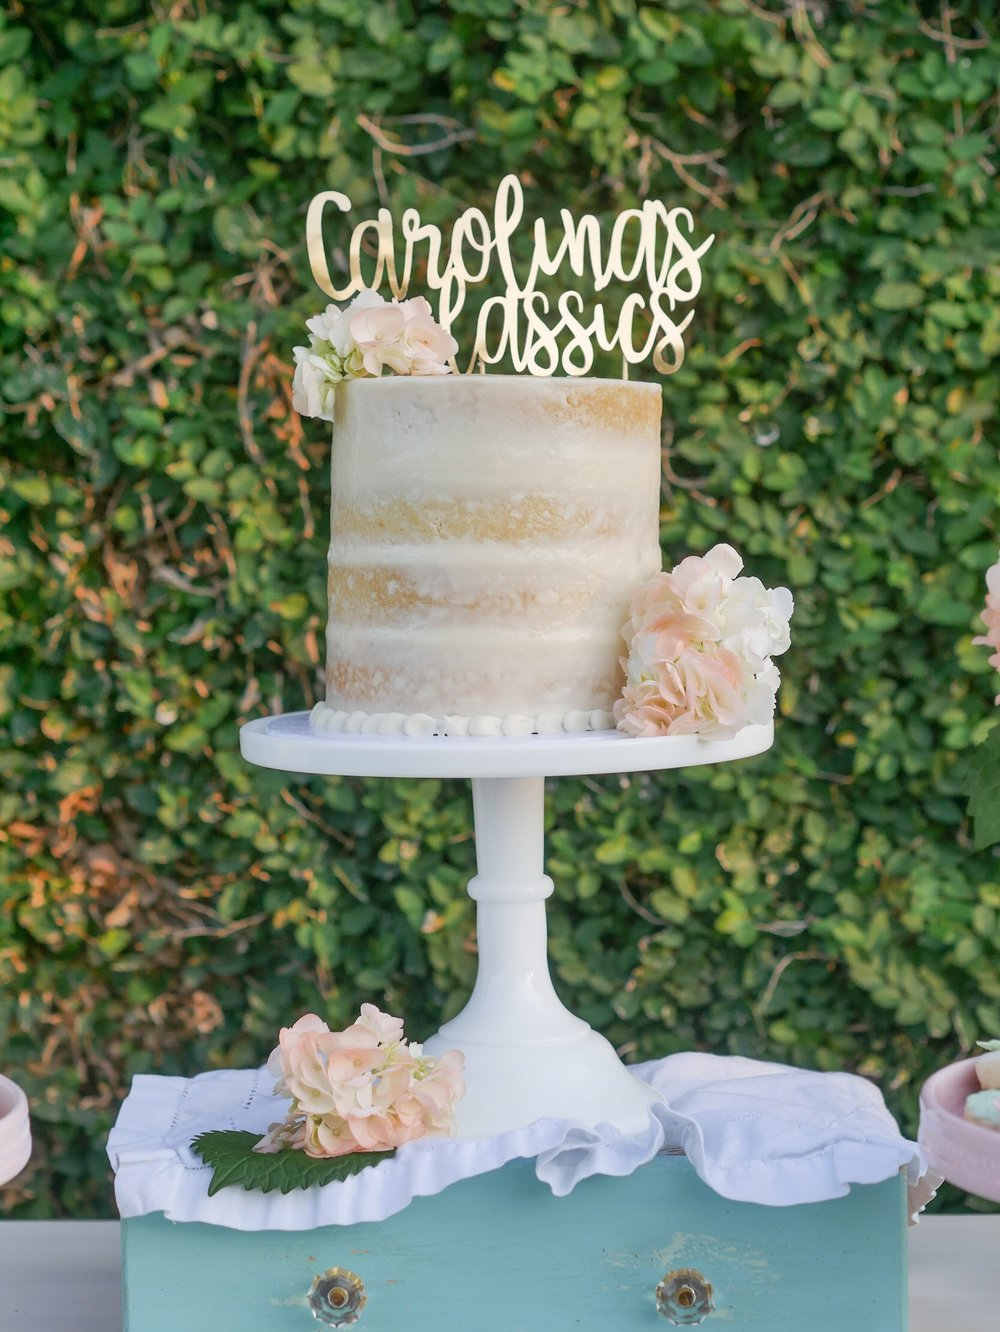 Find out how to set up a garden party with a vintage vibe. Loving this barely frosted party cake with the pretty font cake topper and florals. See how to finish setting up your dessert party outdoors on Mint Event Design www.minteventdesign.com #dessertparty #partytips #partyplanning #partyideas #diyparty #desserttable #outdoorparty #partycake